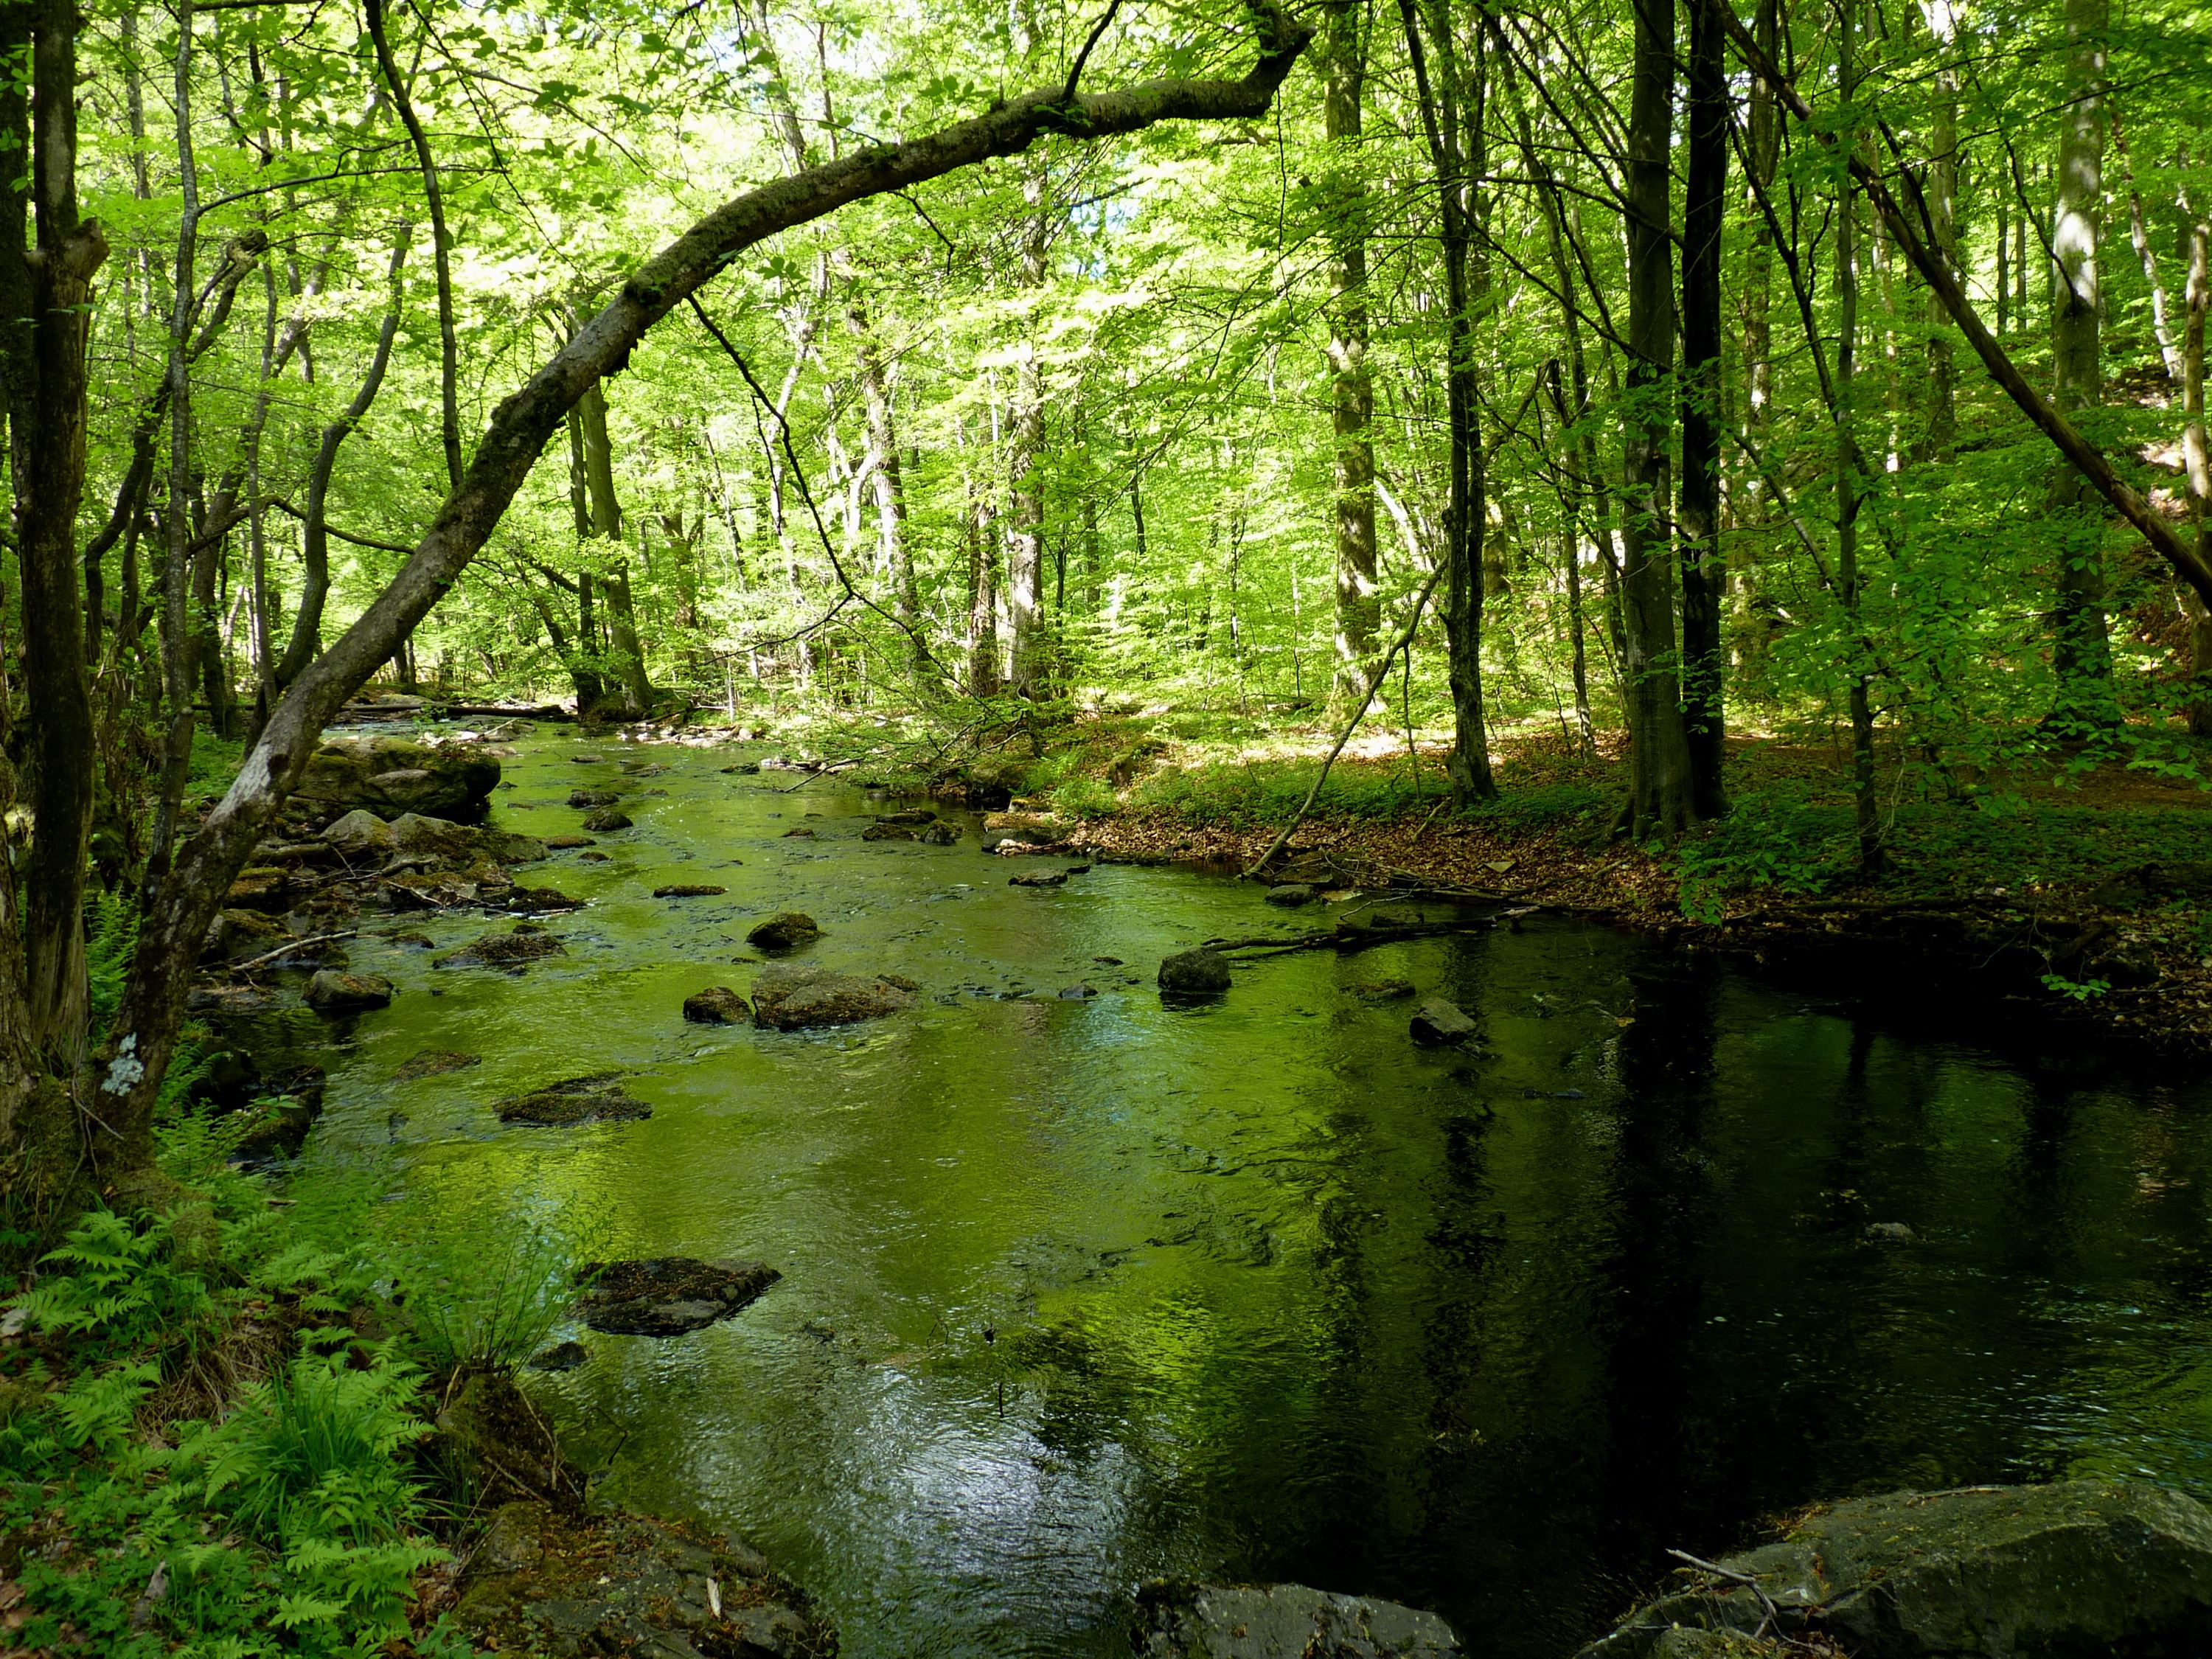 A calm stream surrounded by summergreen trees